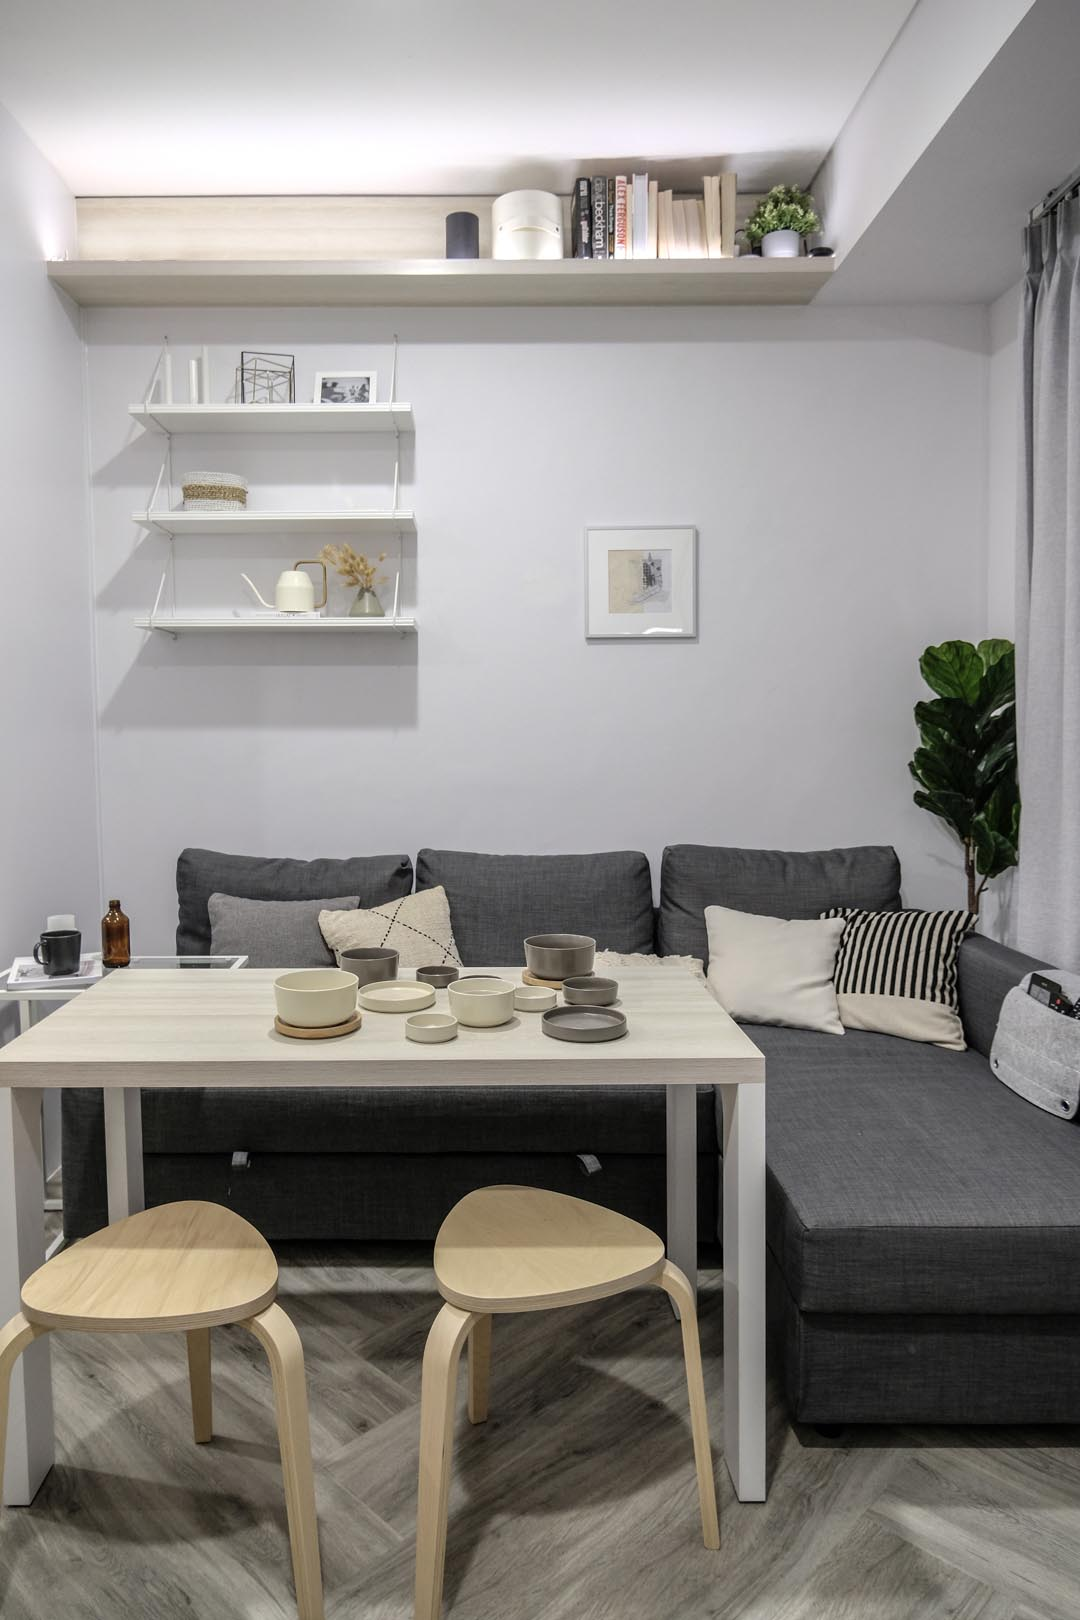 A Loft Bed With Storage Underneath Makes This Small Micro Apartment More Liveable 6